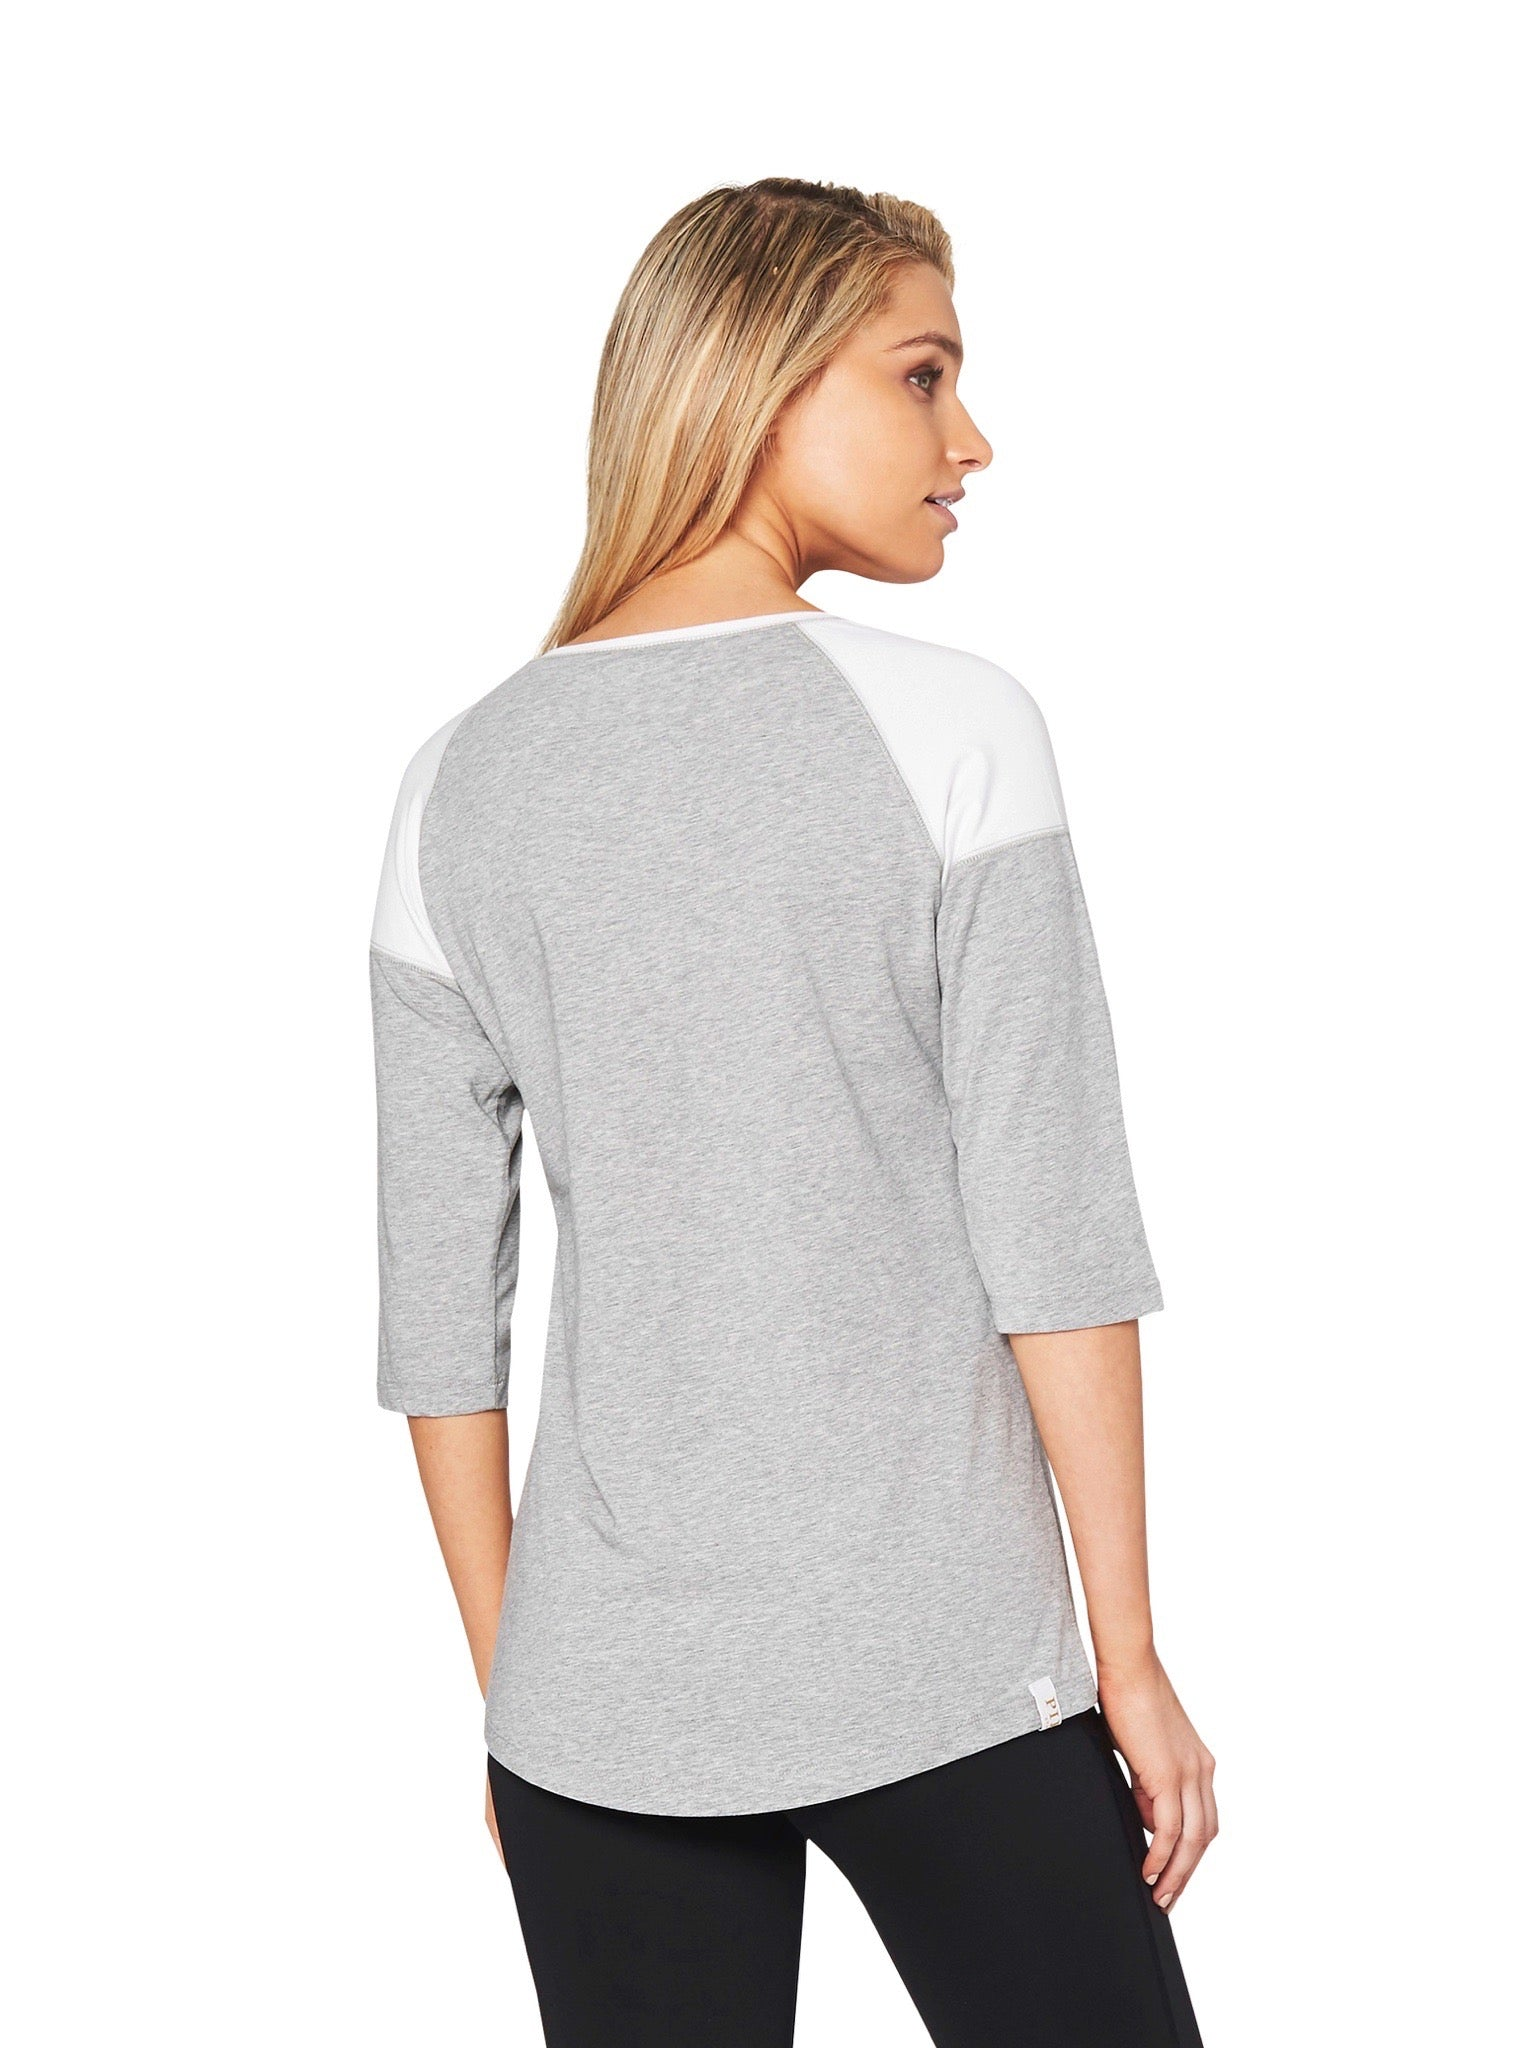 ELINOR RAGLAN 3/4 TEE - GREY